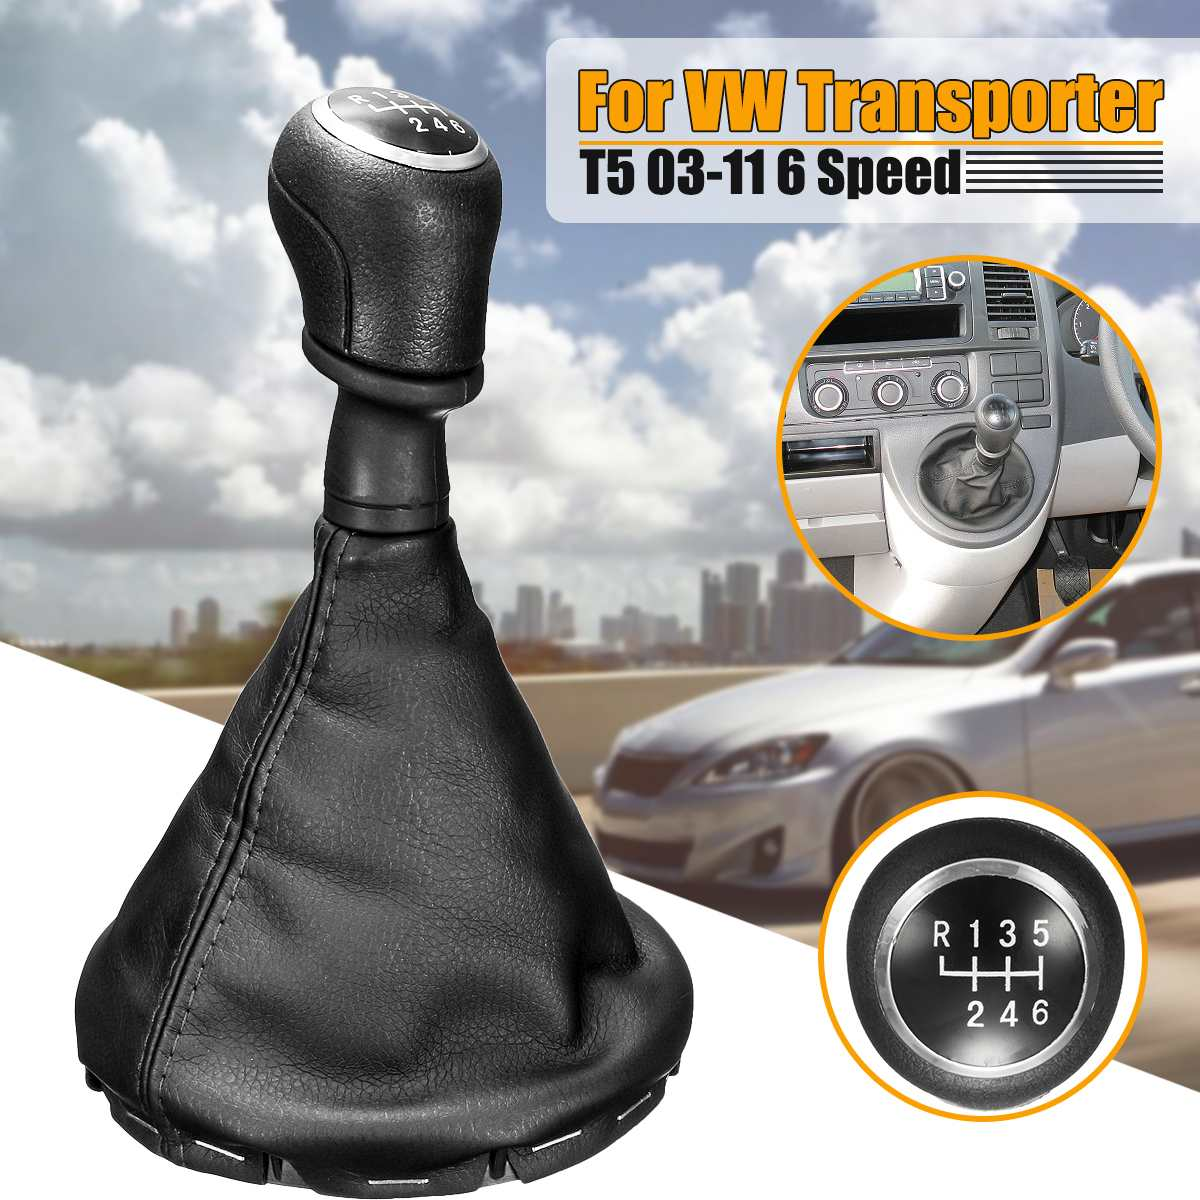 2003-2011 Manual 6 Speed Gear Shift Knob Gaiter Boot Cover Kit Black Leather Car Gear Stick Knob Cover for Transporter T5//T6